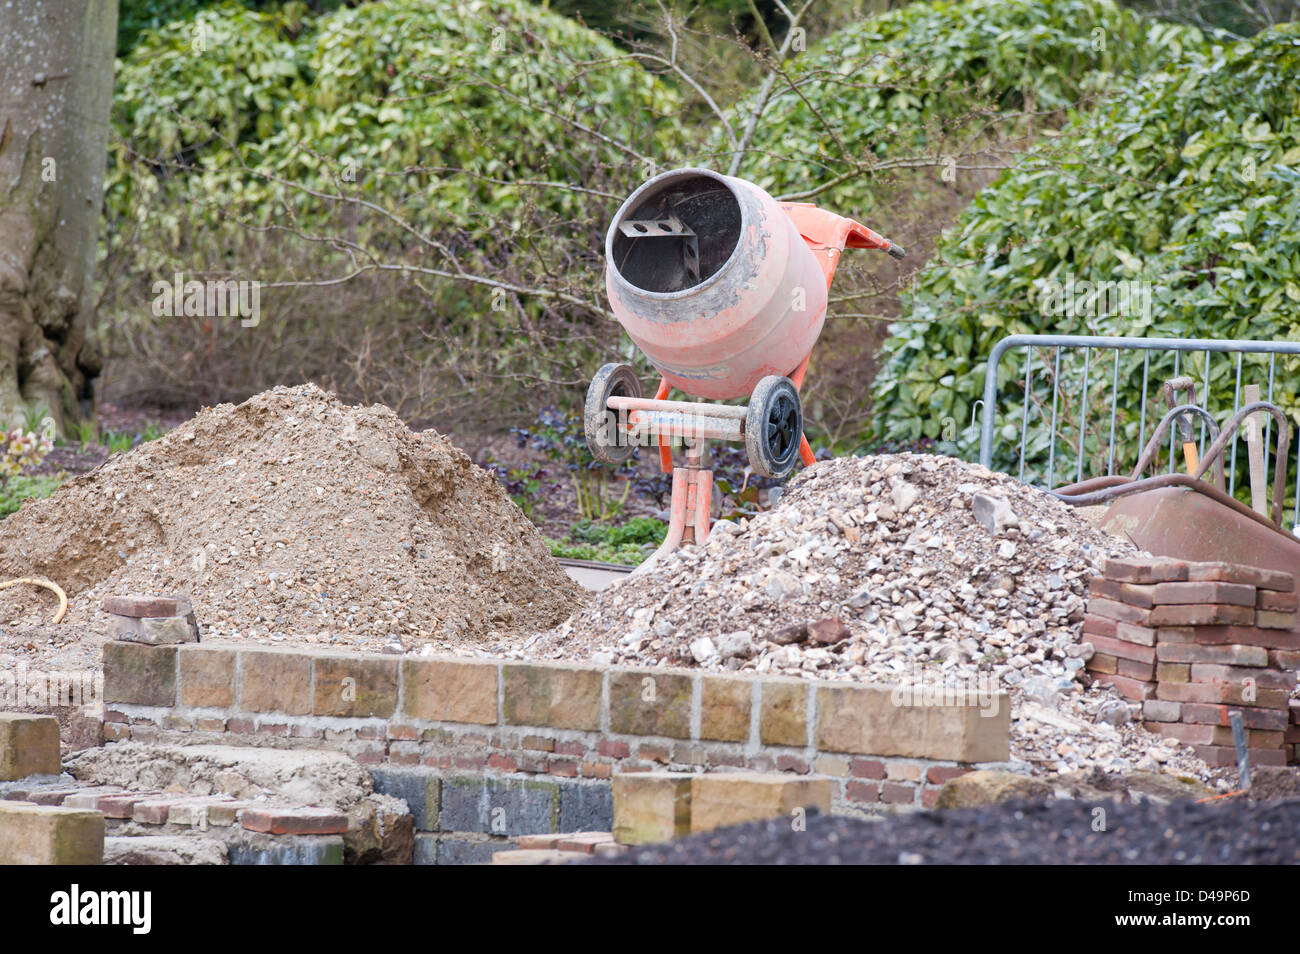 A cement concrete mixer and building materials on site whilst carrying out a hard landscaping job - Stock Image